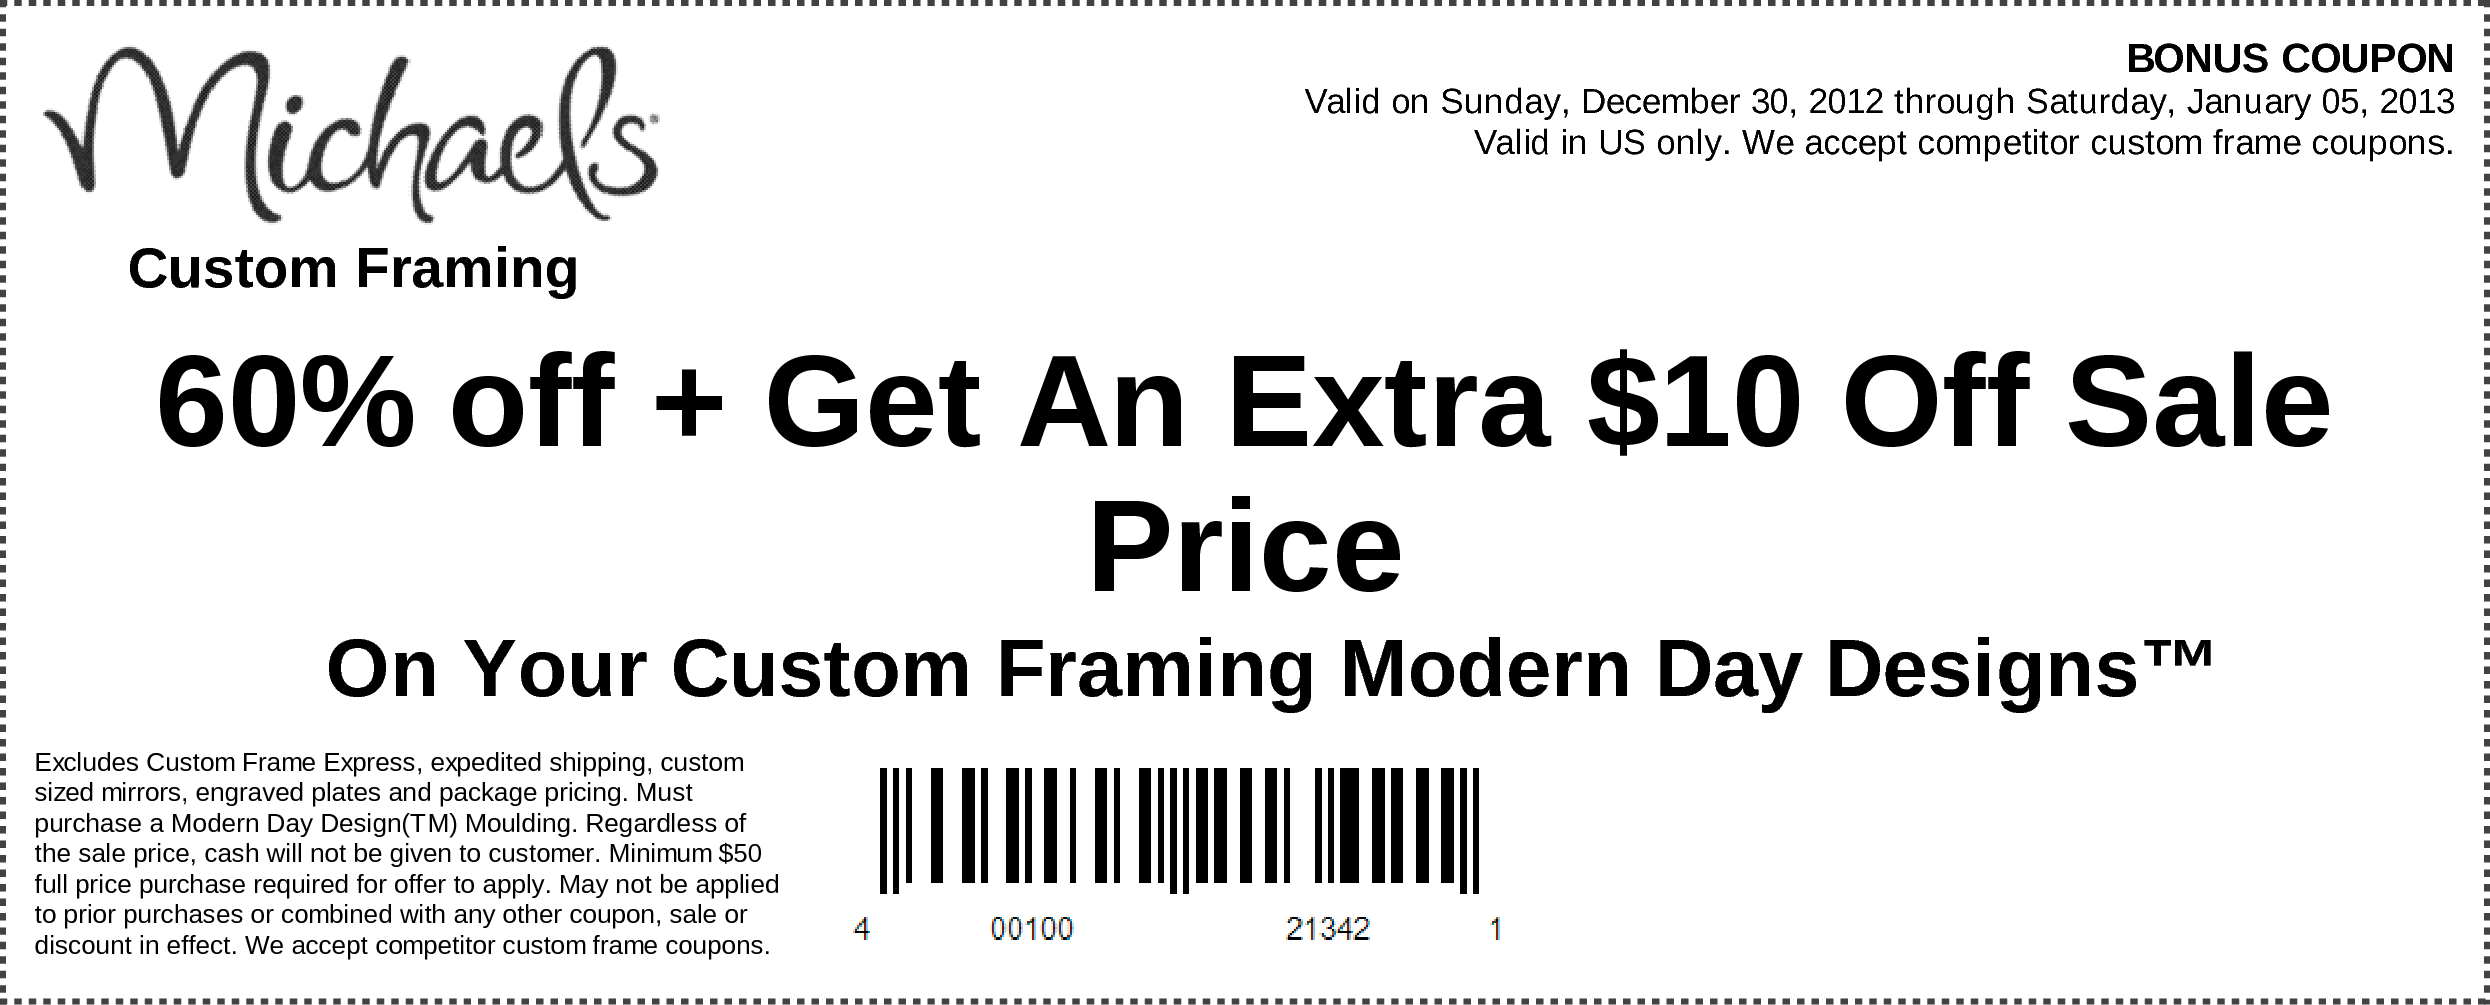 Hobby lobby framing coupons 2018 - Kroger coupons dallas tx